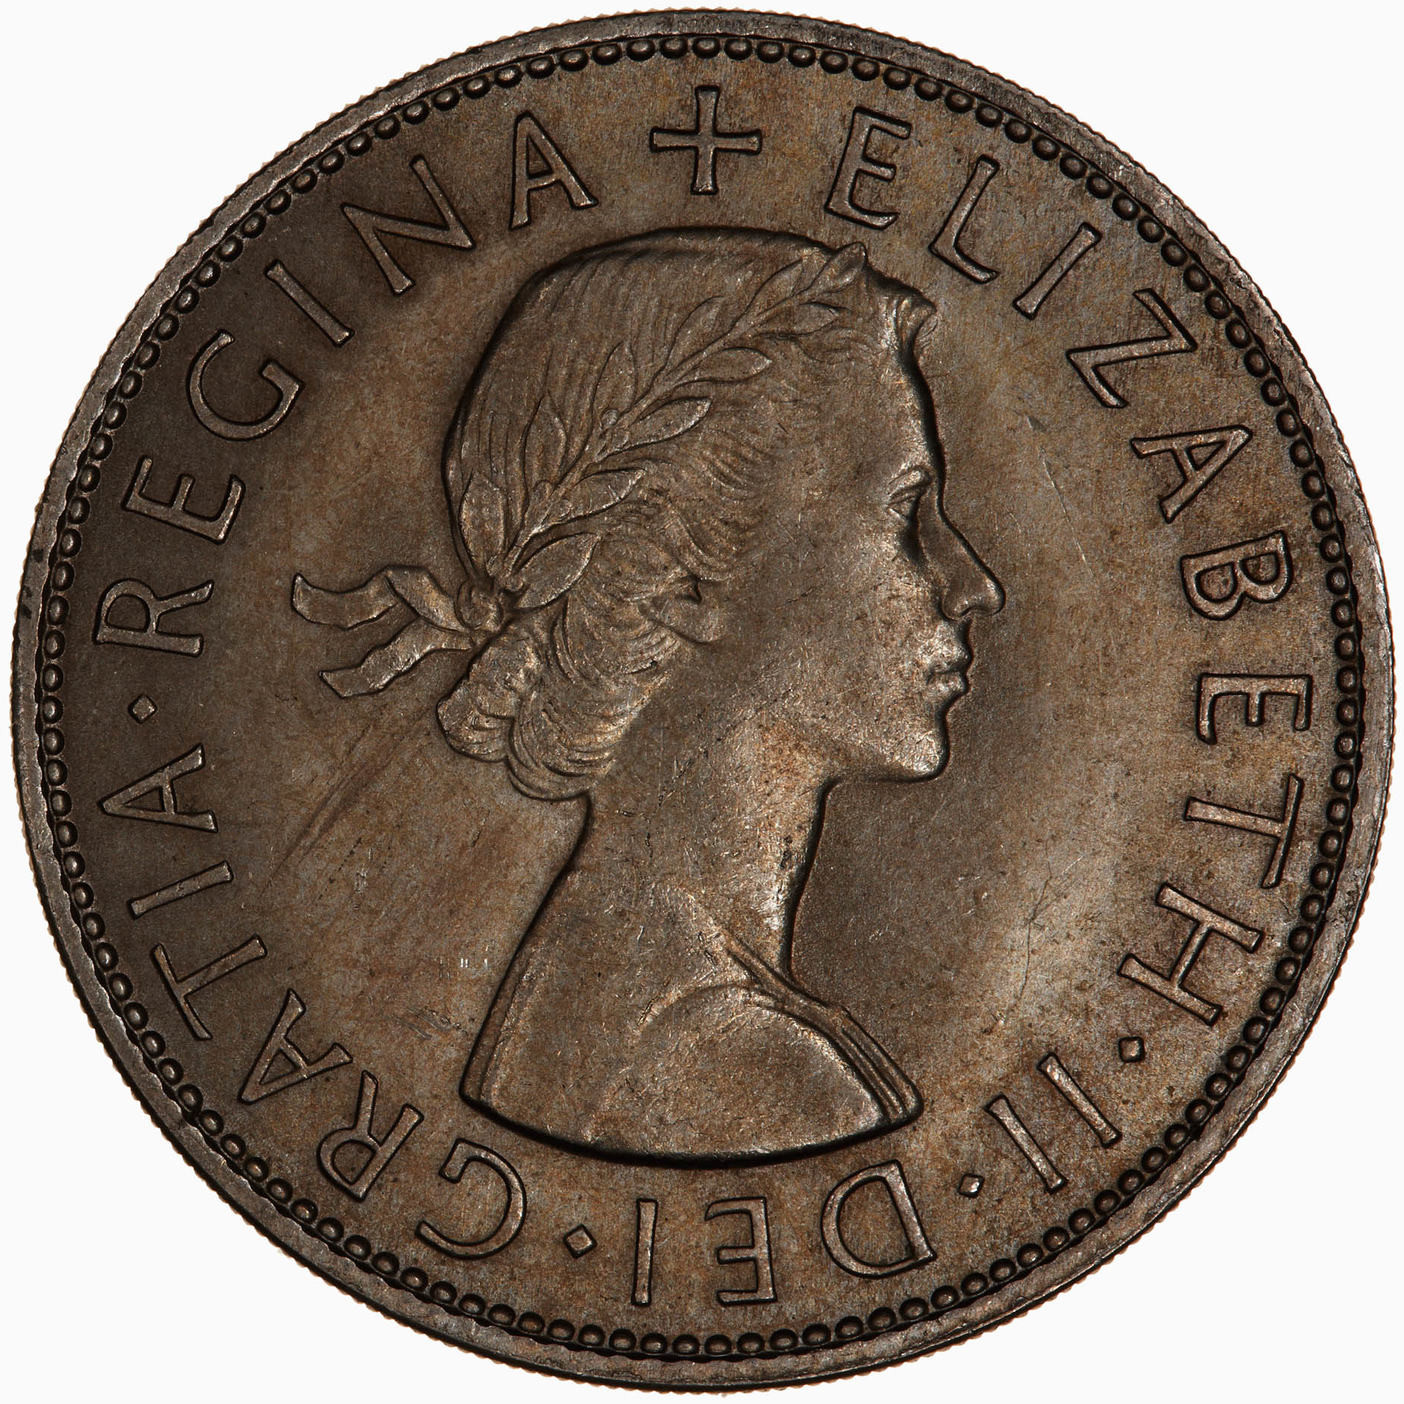 Halfcrown 1966: Photo Coin - Halfcrown, Elizabeth II, Great Britain, 1966